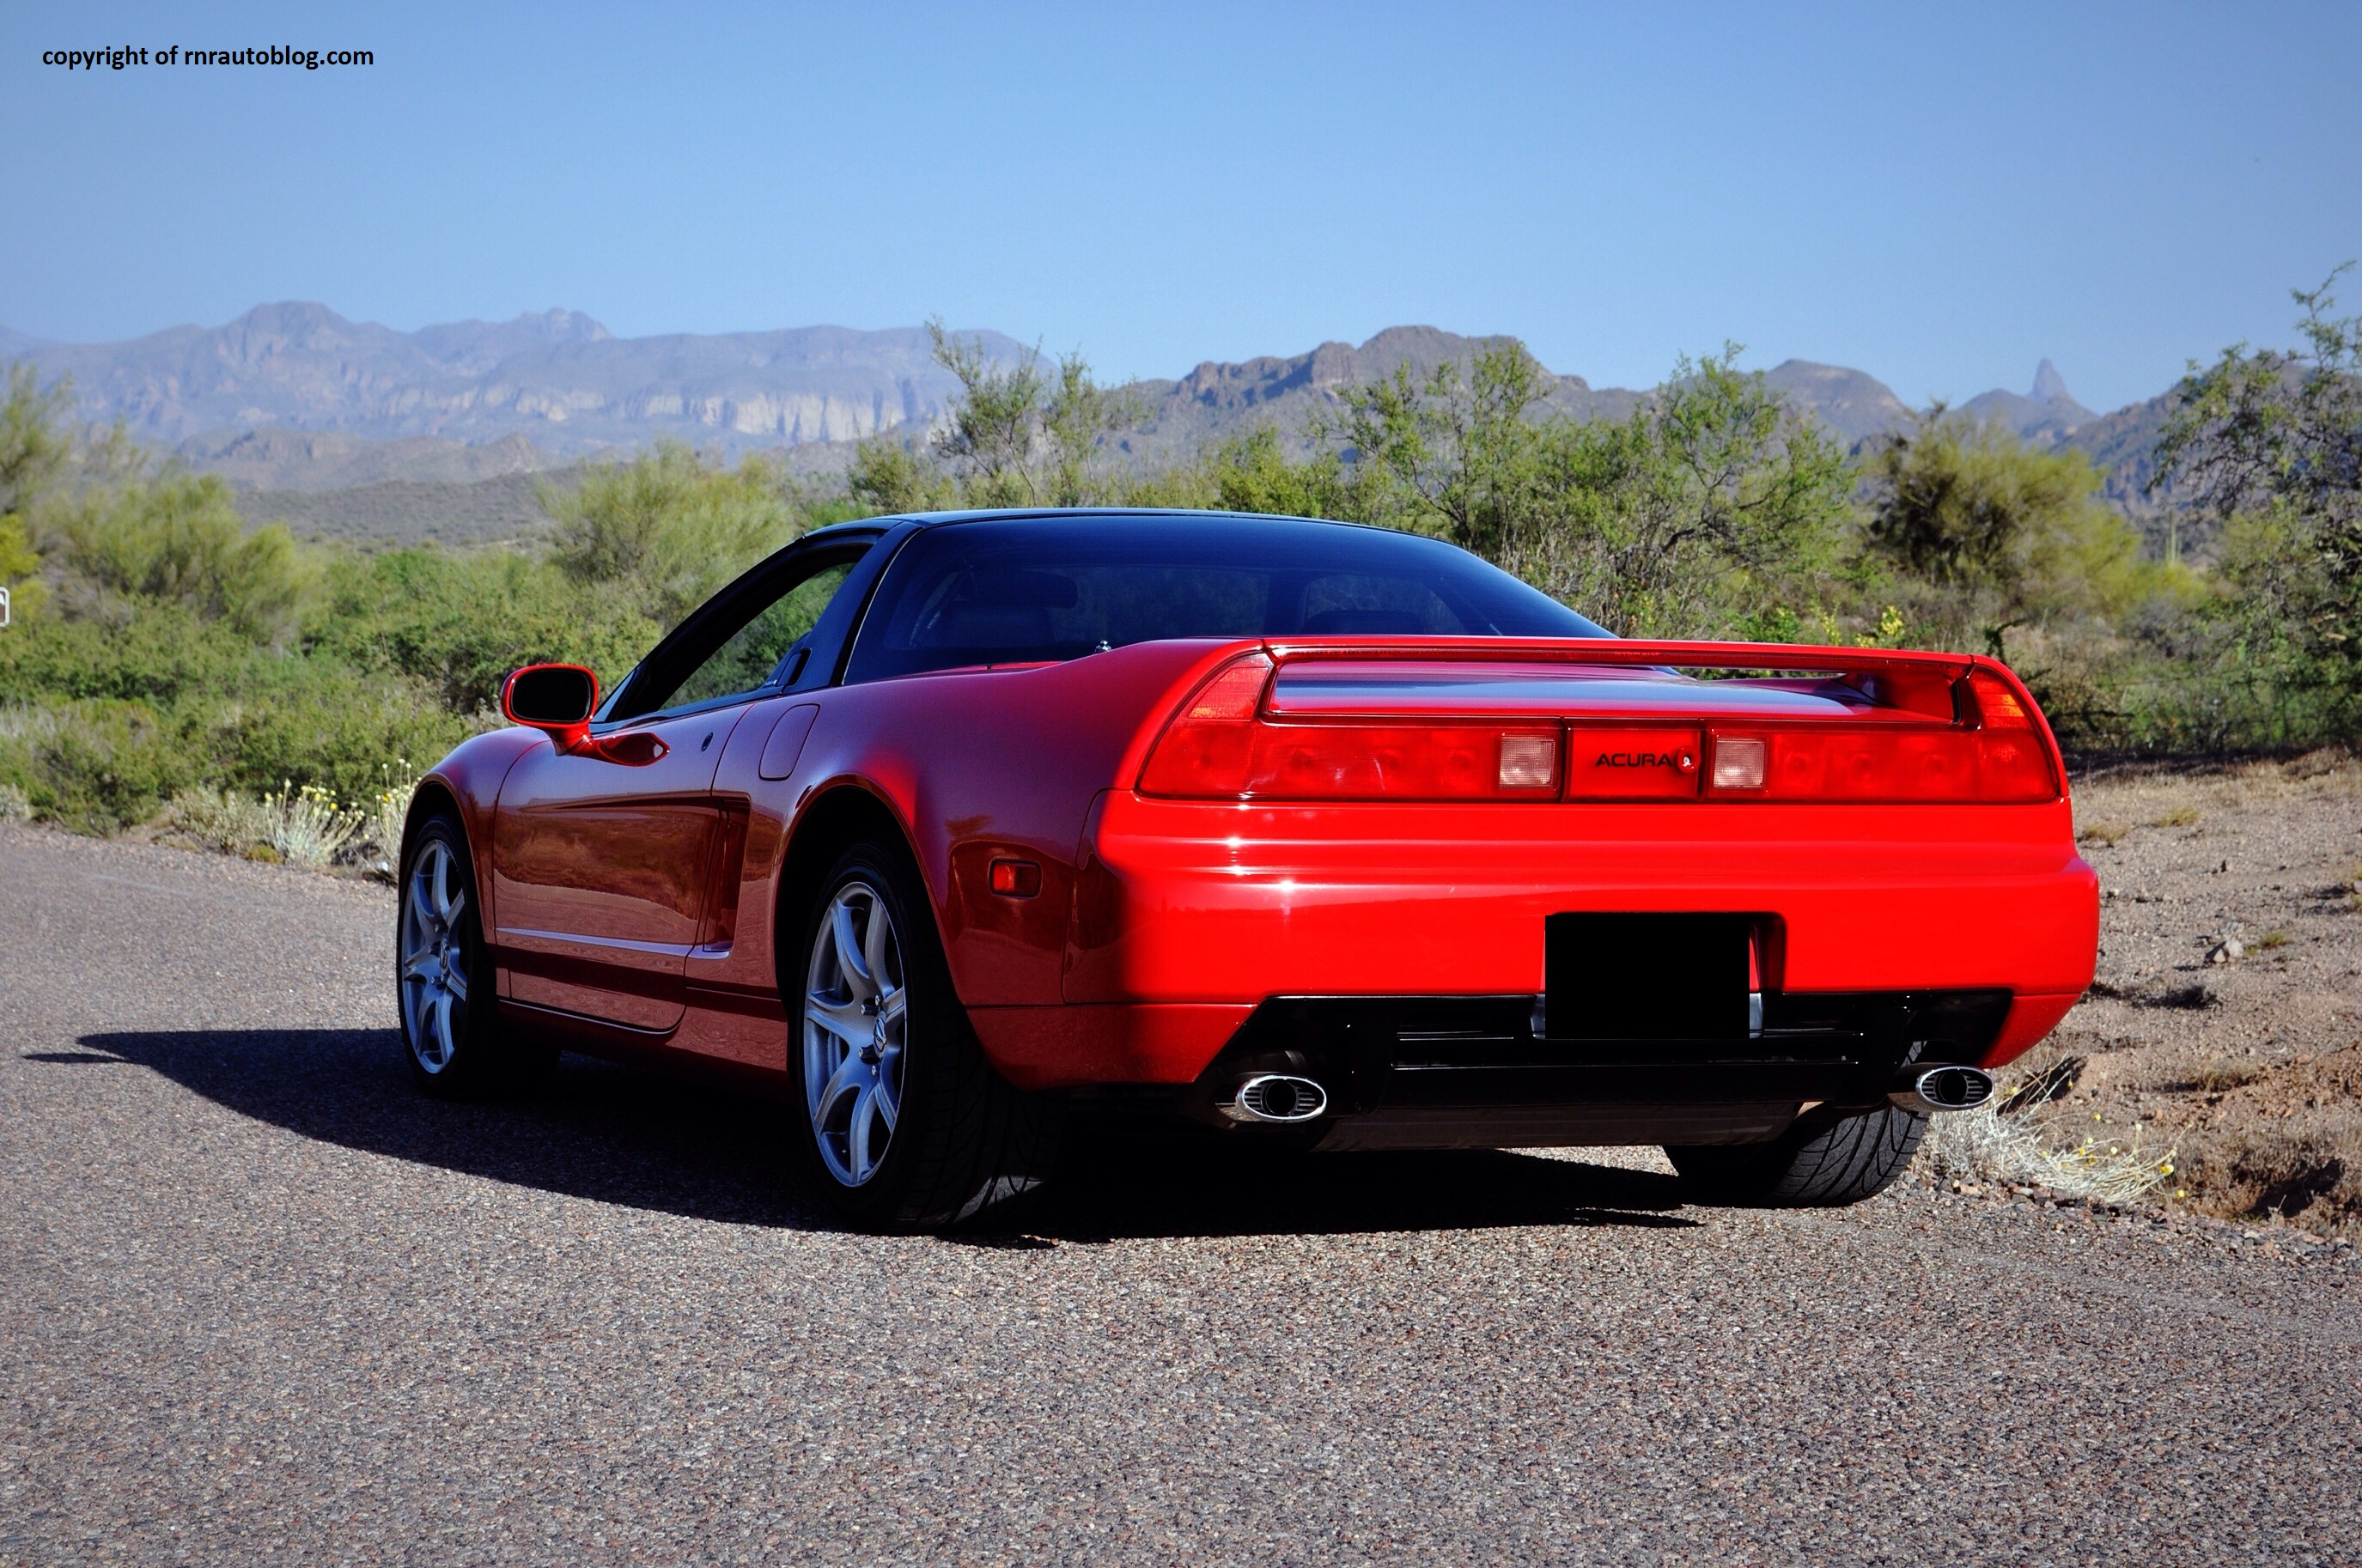 Even Though The Honda NSX (Acura Is Hondau0027s Luxury Division, And The NSX  Was Sold As An Acura In North America) Debuted In 1990, Honda Actually  Started ...